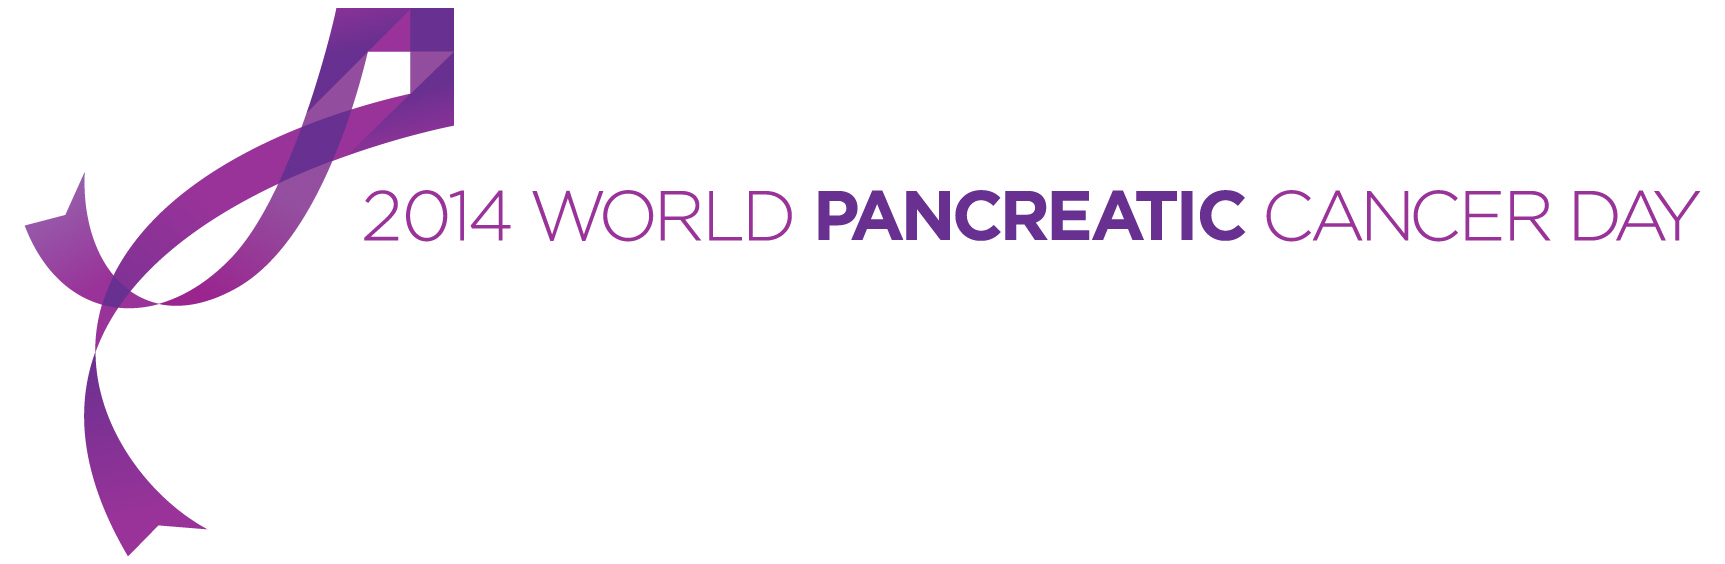 World Pancreatic Cancer Day 2014